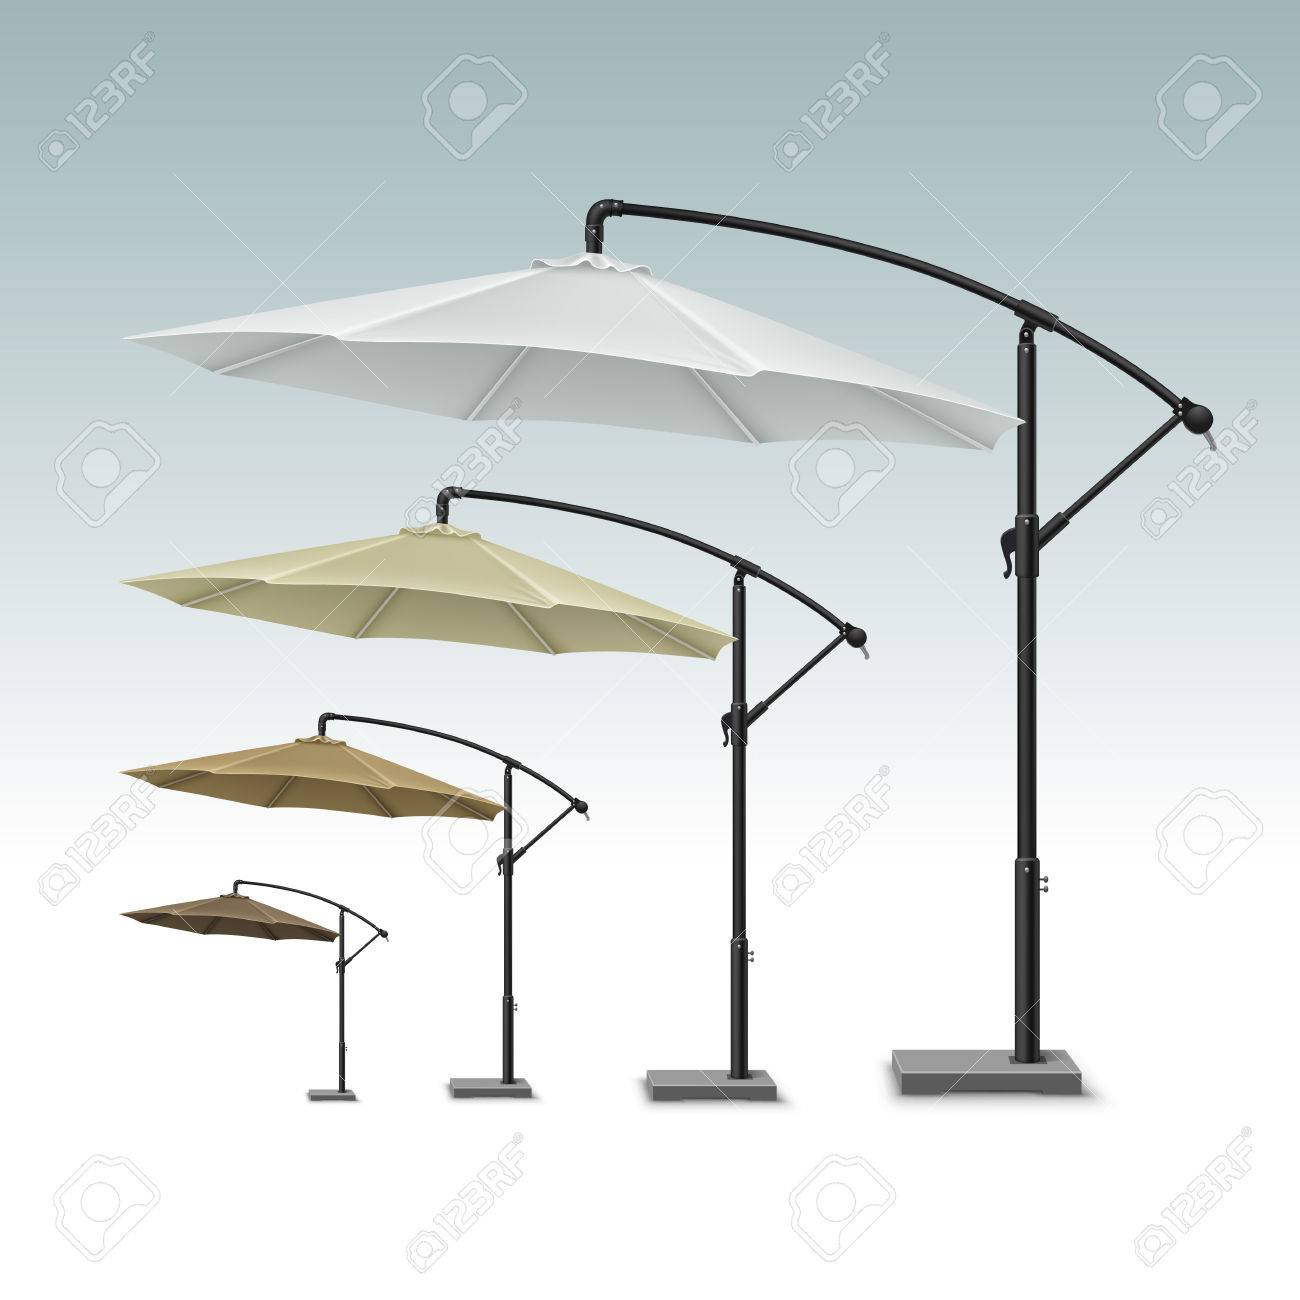 Blank Patio Outdoor Beach Cafe Lounge Restaurant Round Umbrella Royalty Free Cliparts Vectors And Stock Illustration Image 68932604